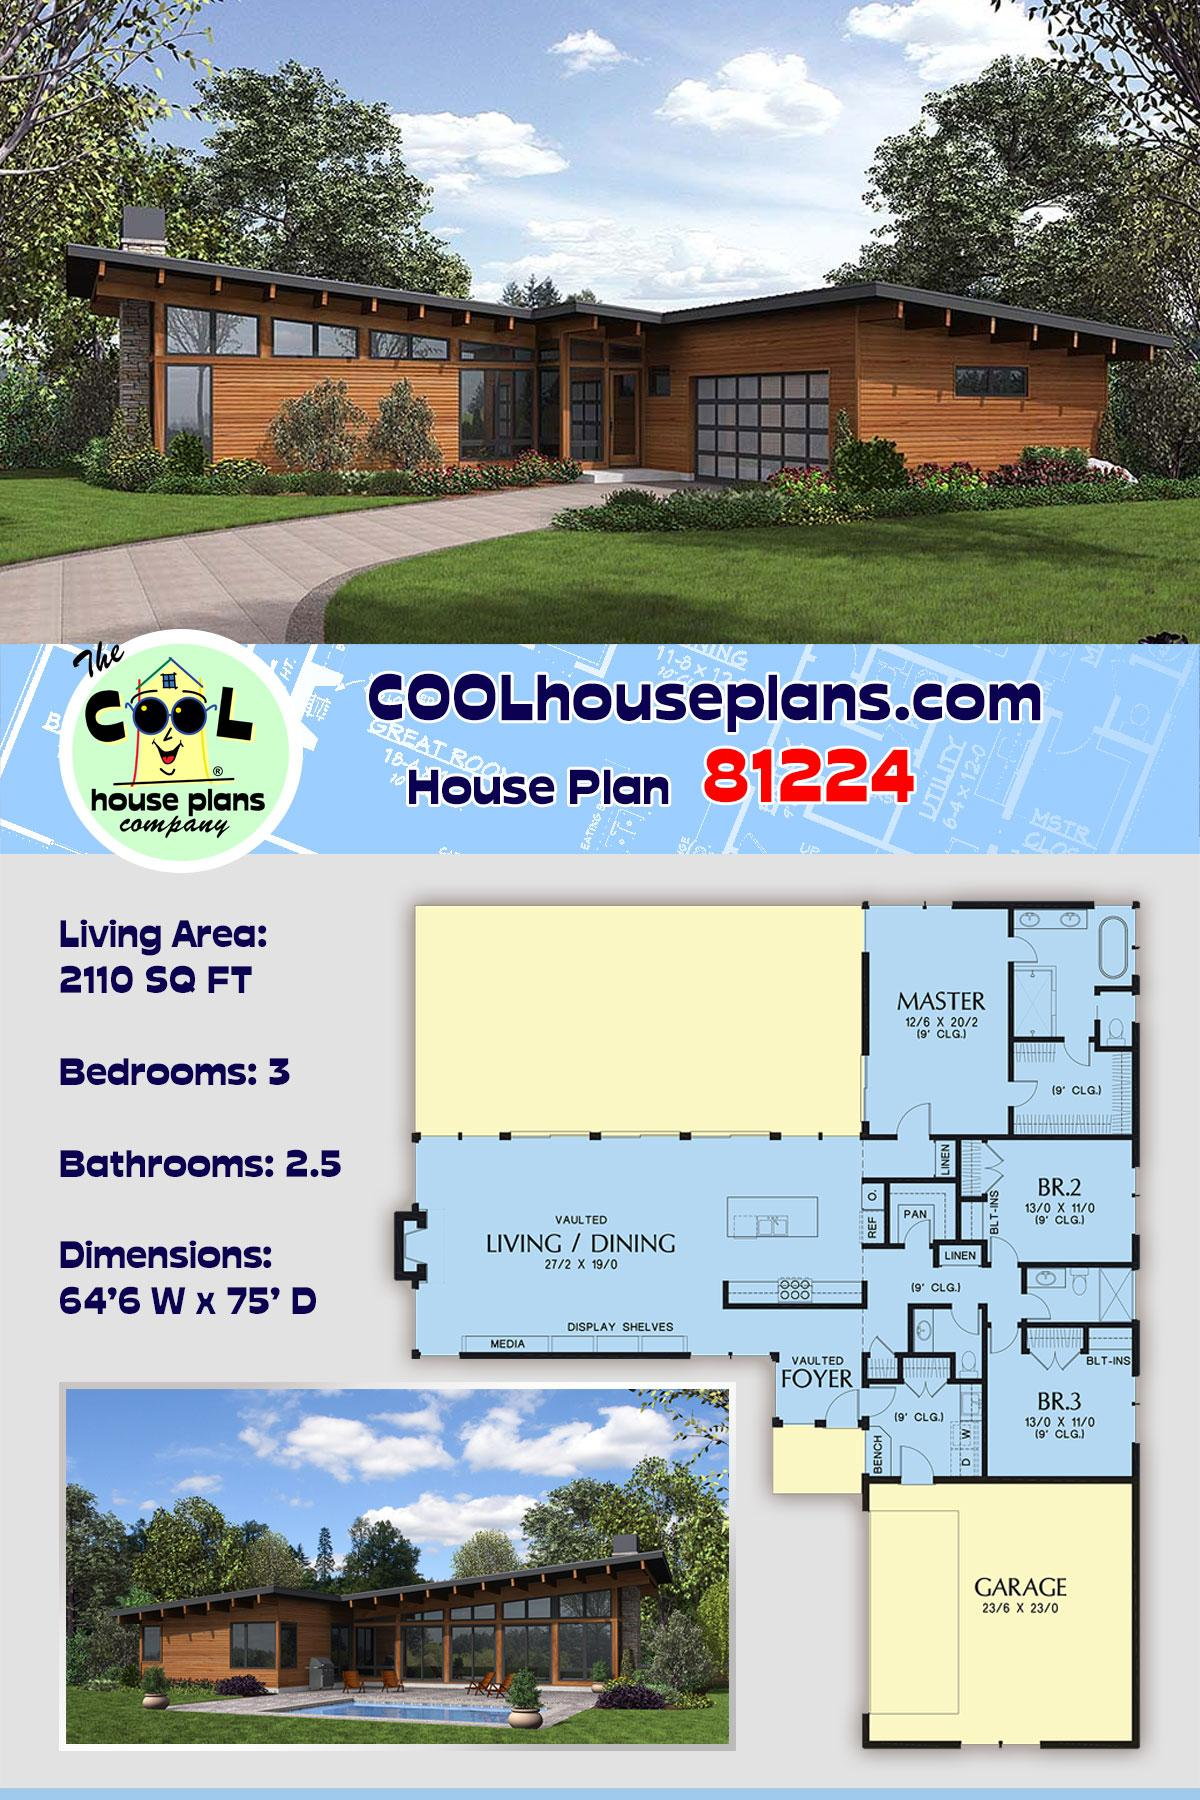 Contemporary House Plan 81224 with 3 Beds, 3 Baths, 2 Car Garage